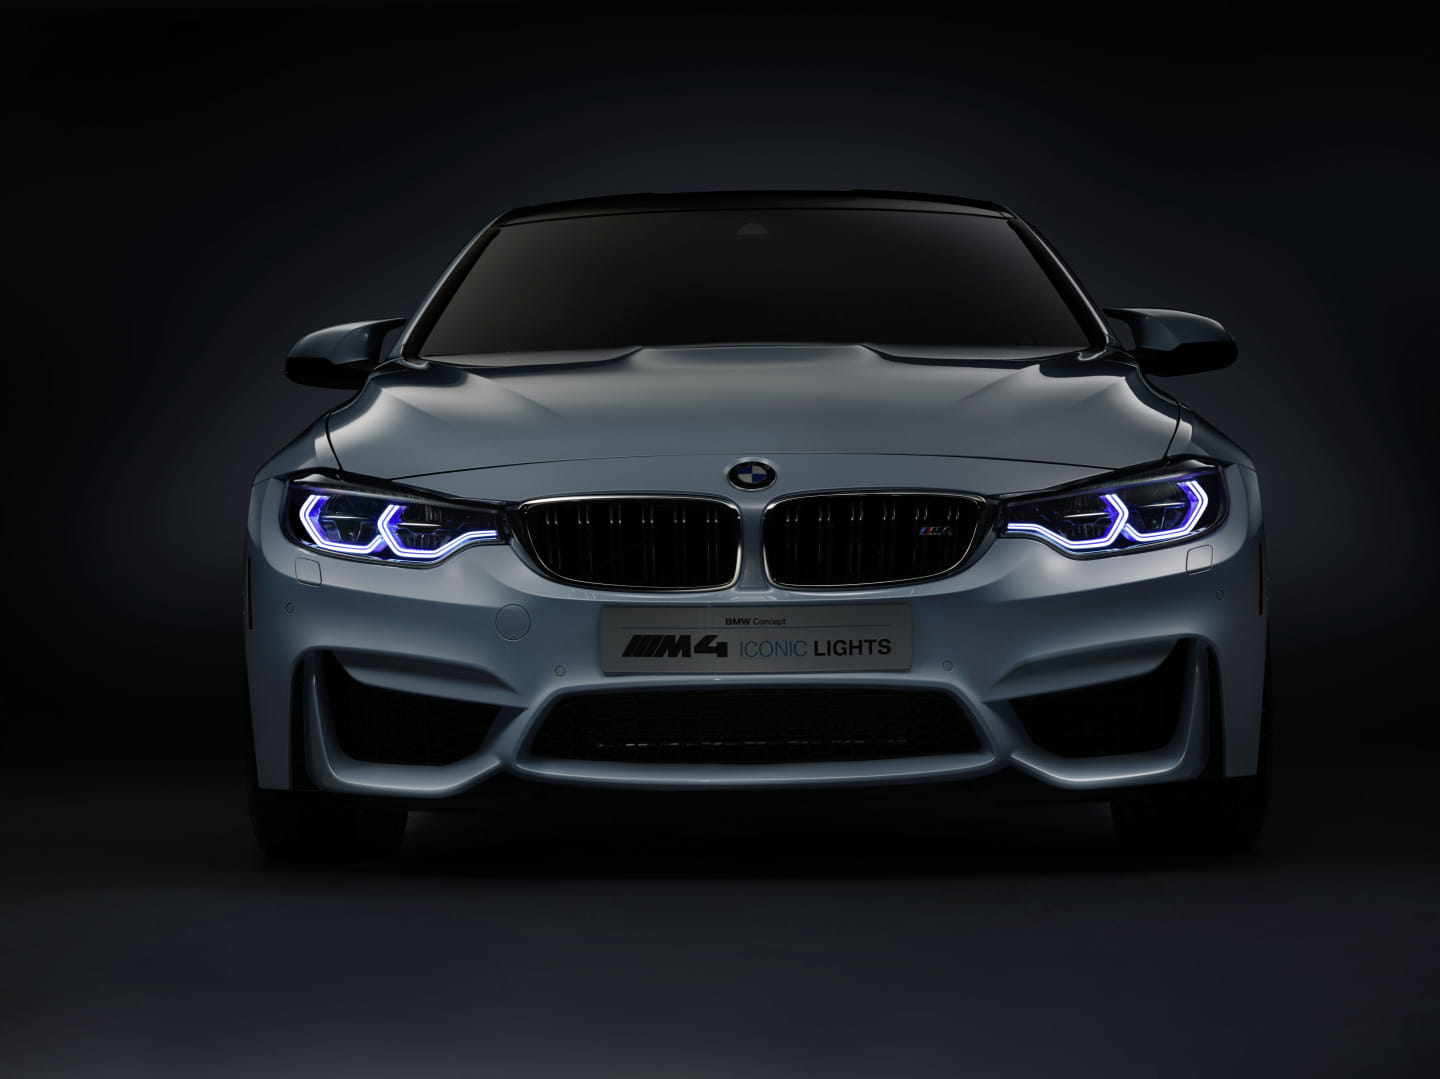 BMW_M4_Concept_Iconic_Lights_18